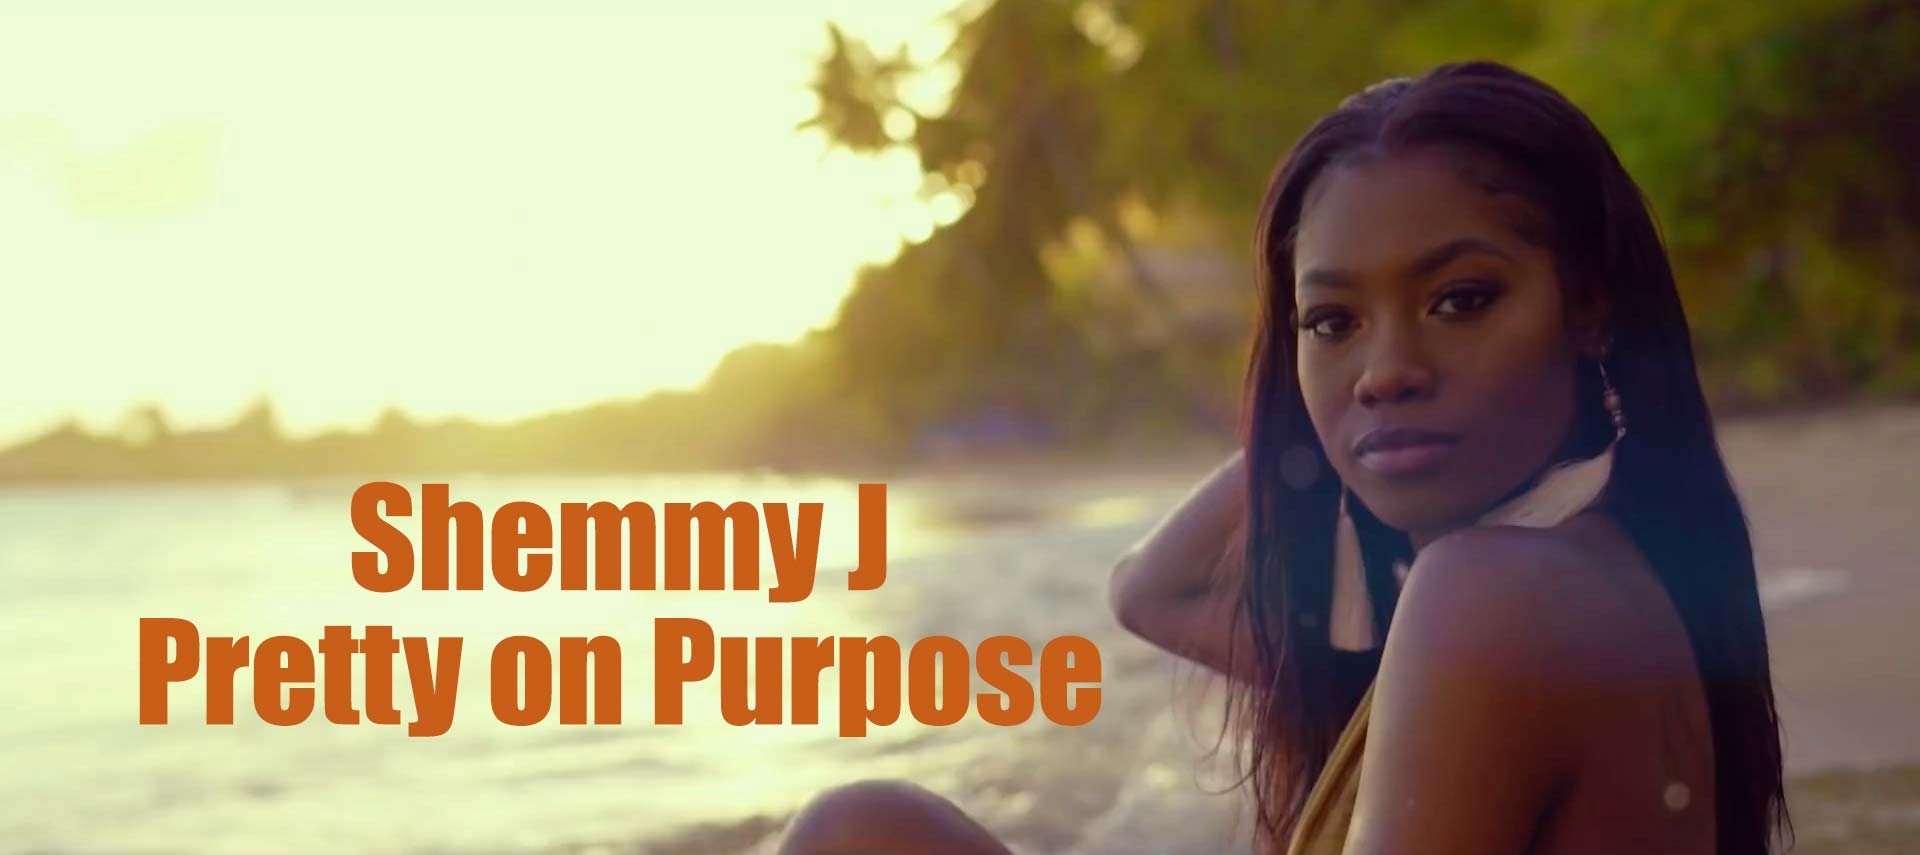 Shemmy J - ``Pretty on Purpose`` Music Video